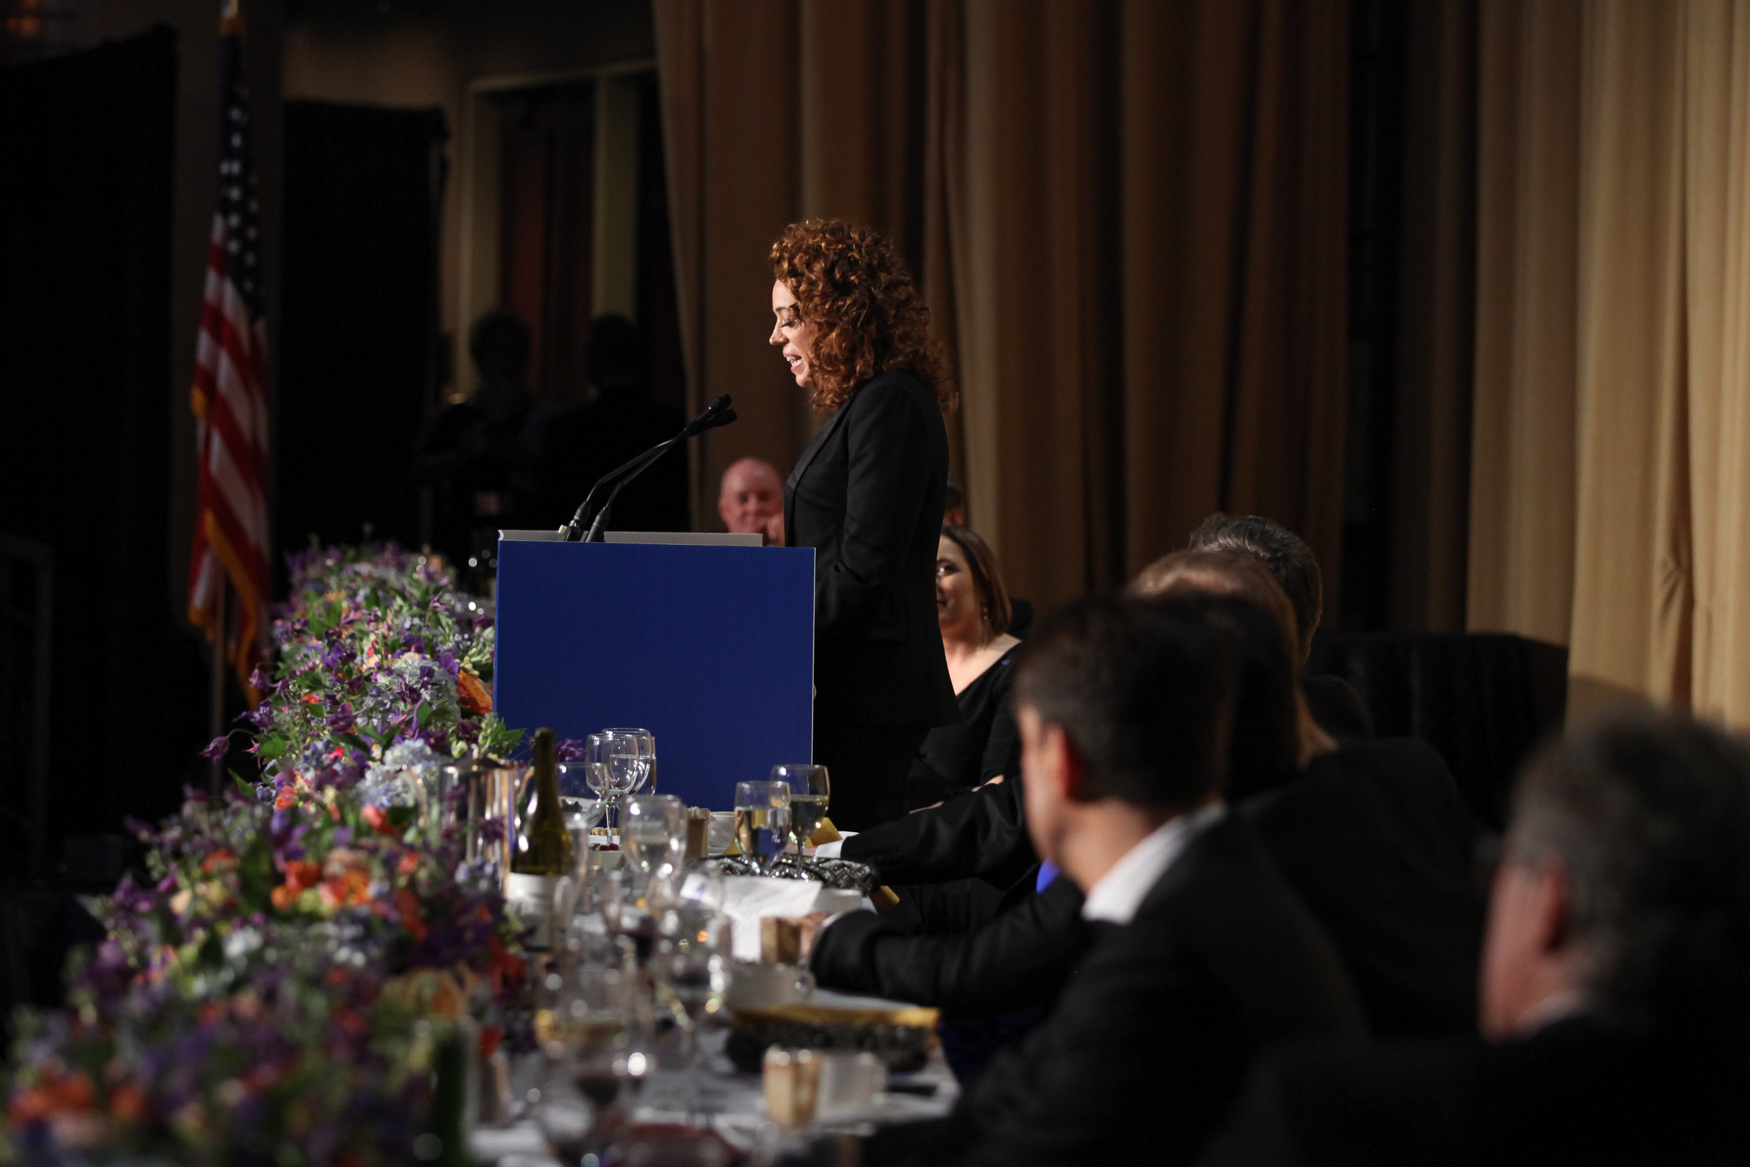 Comedienne Michelle Wolf lampooned politicians and media alike during the White House Correspondents' Dinner. (Amanda Andrade-Rhoades/DC Refined)